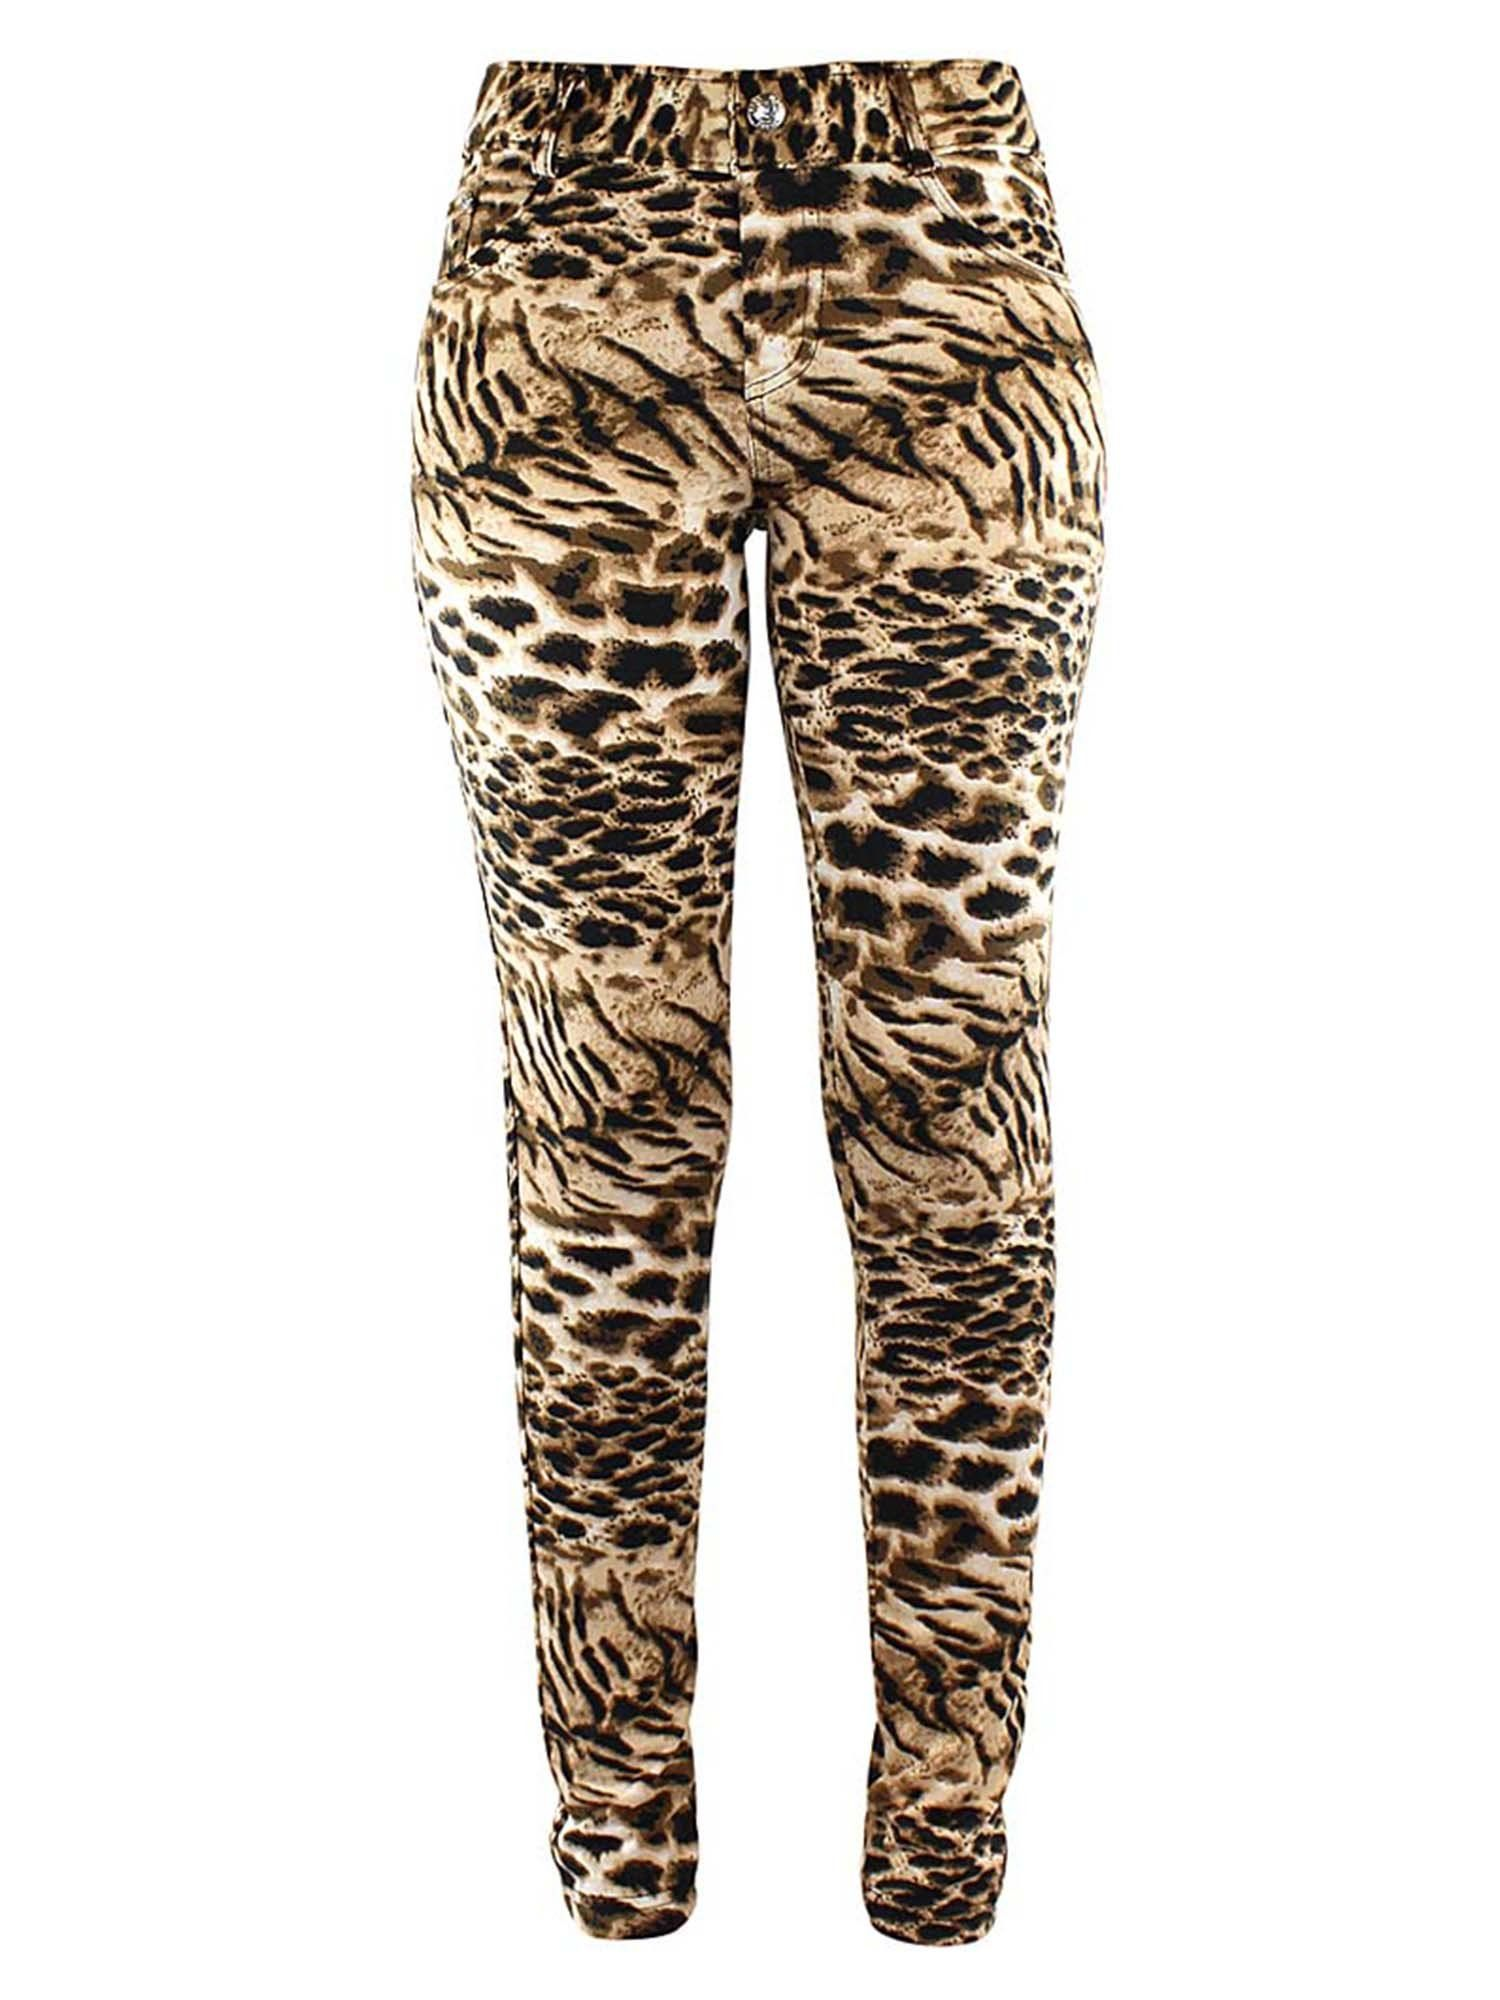 0f6cdd38dafe3 Leopard Print Jeggings With Pockets in 2019 | Leggings & Bottoms ...